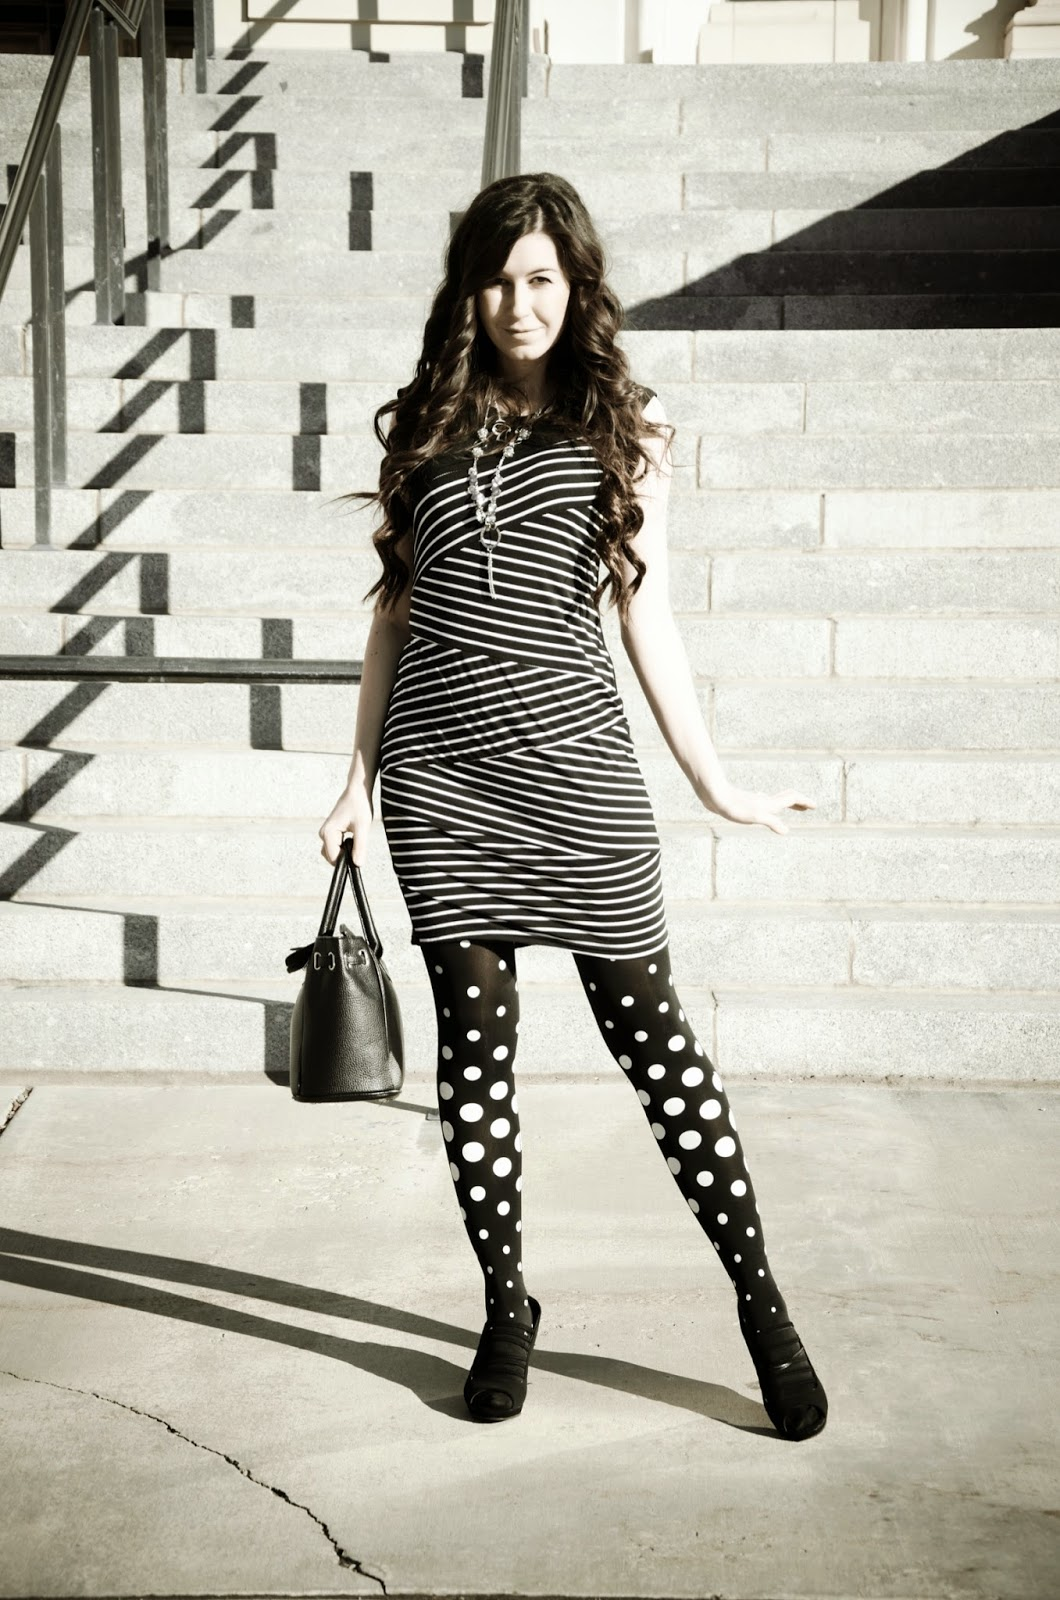 polka dots and stripes, polka dot tights, zig zag dress, black and white, black and white dress, black and white tights, striped dress with polka dot tights outfit, polka dot outfit, wedges,